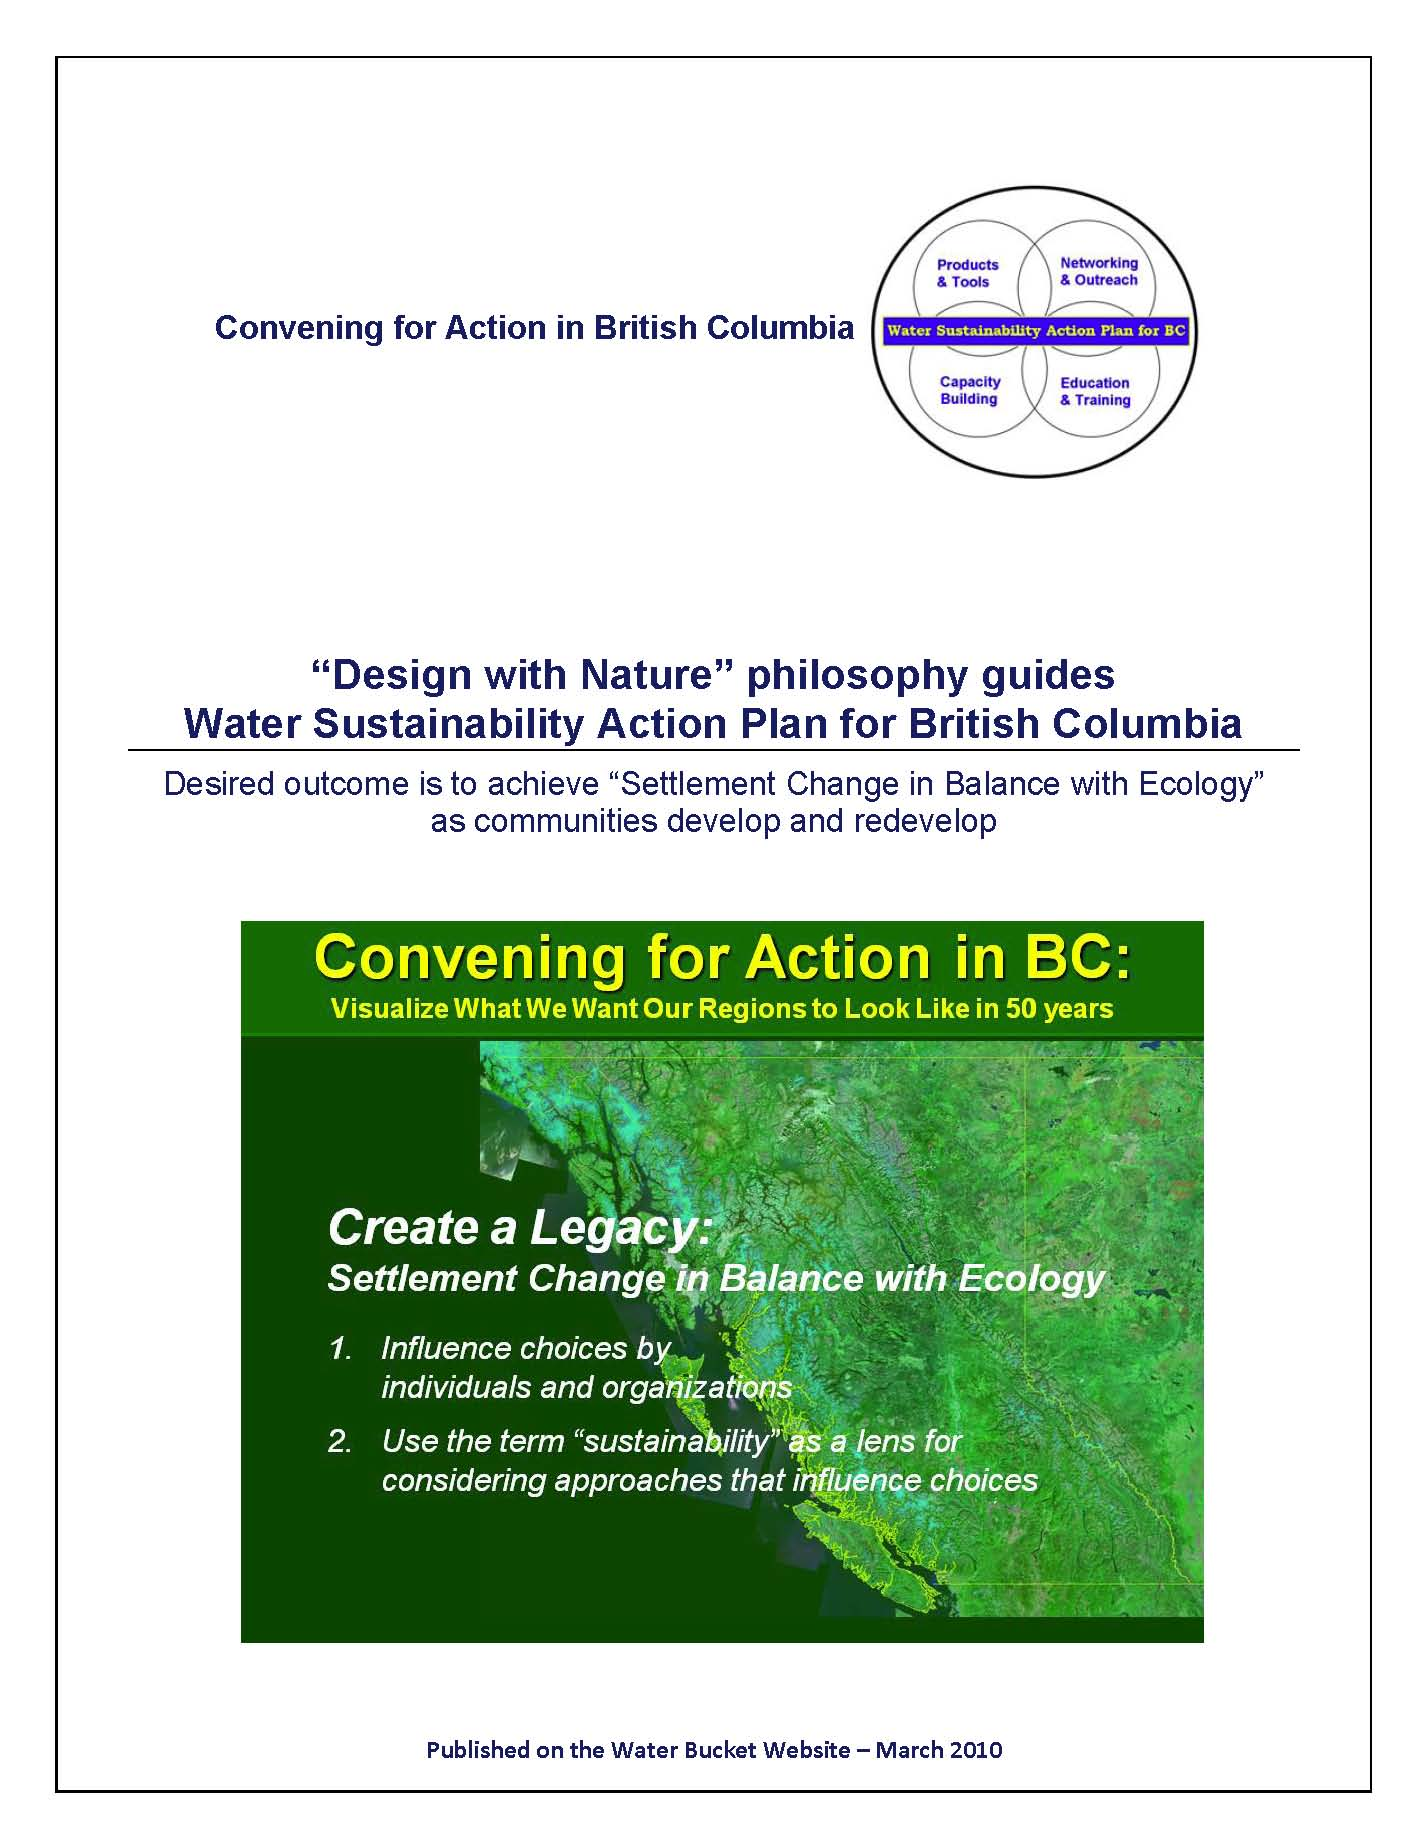 CFA-Story_Design-with-Nature_cover_Mar-2010